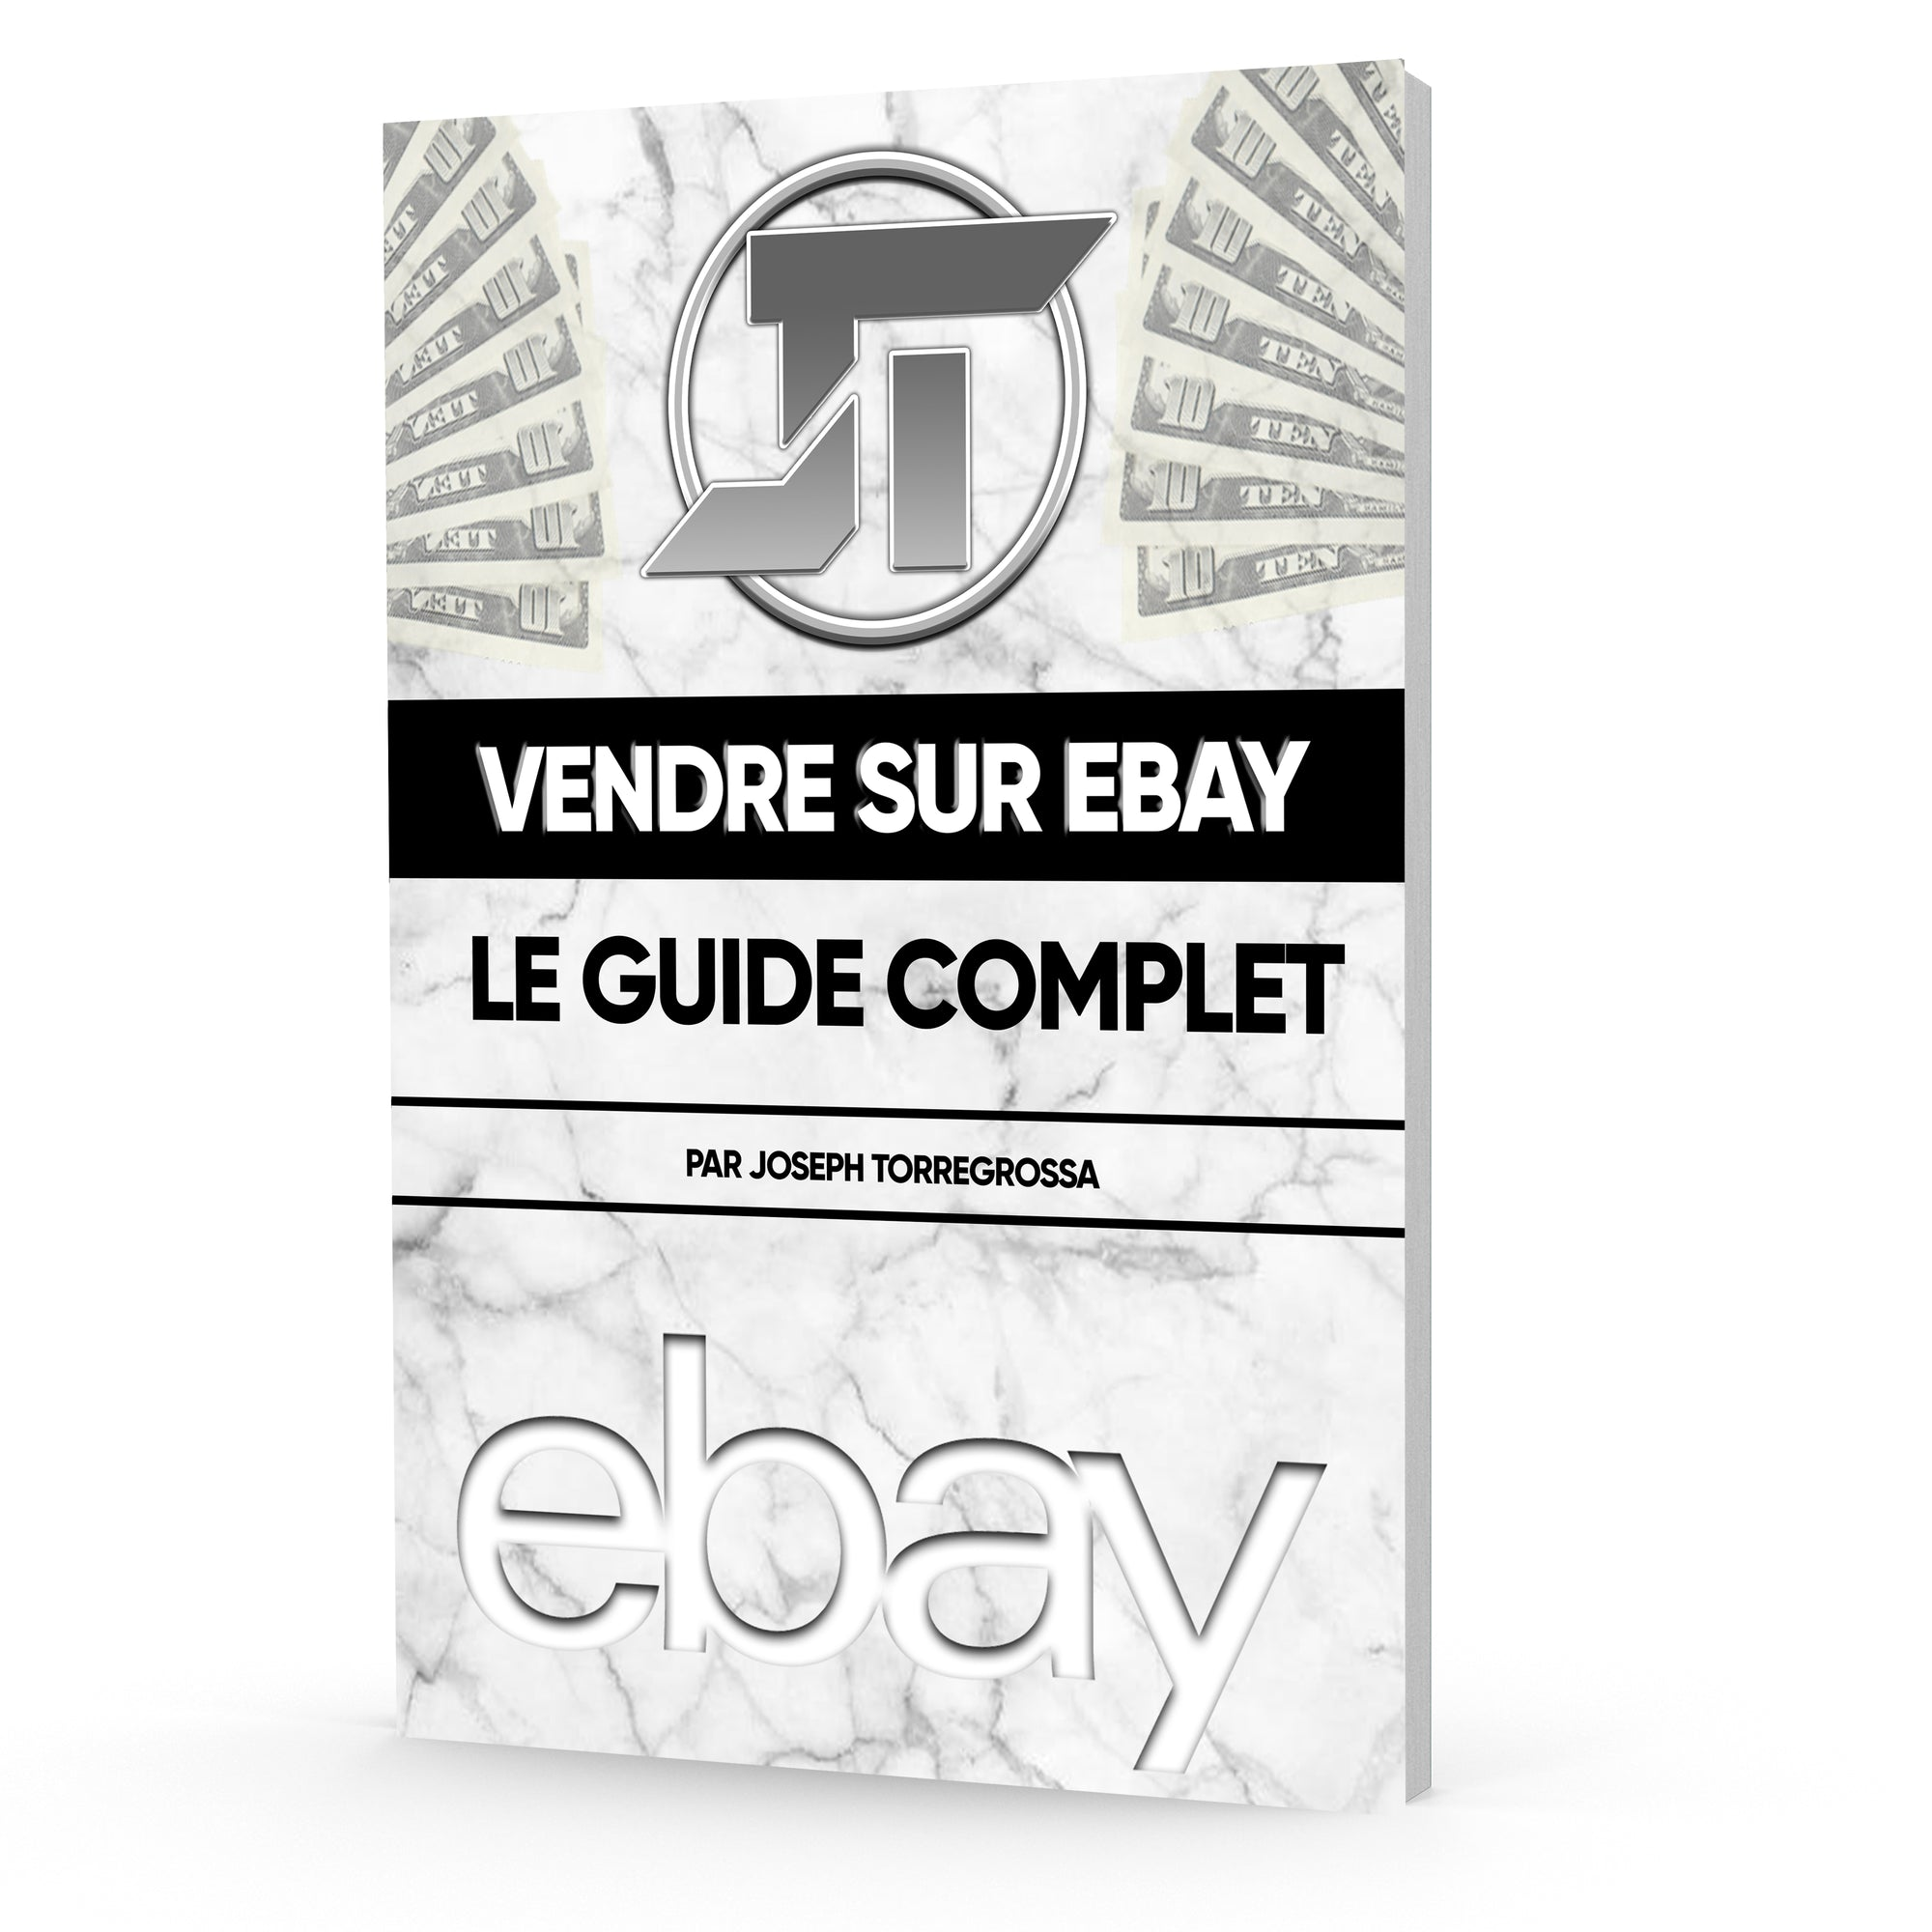 Vendre sur Ebay : Guide Complet (Ebook de 20 pages)